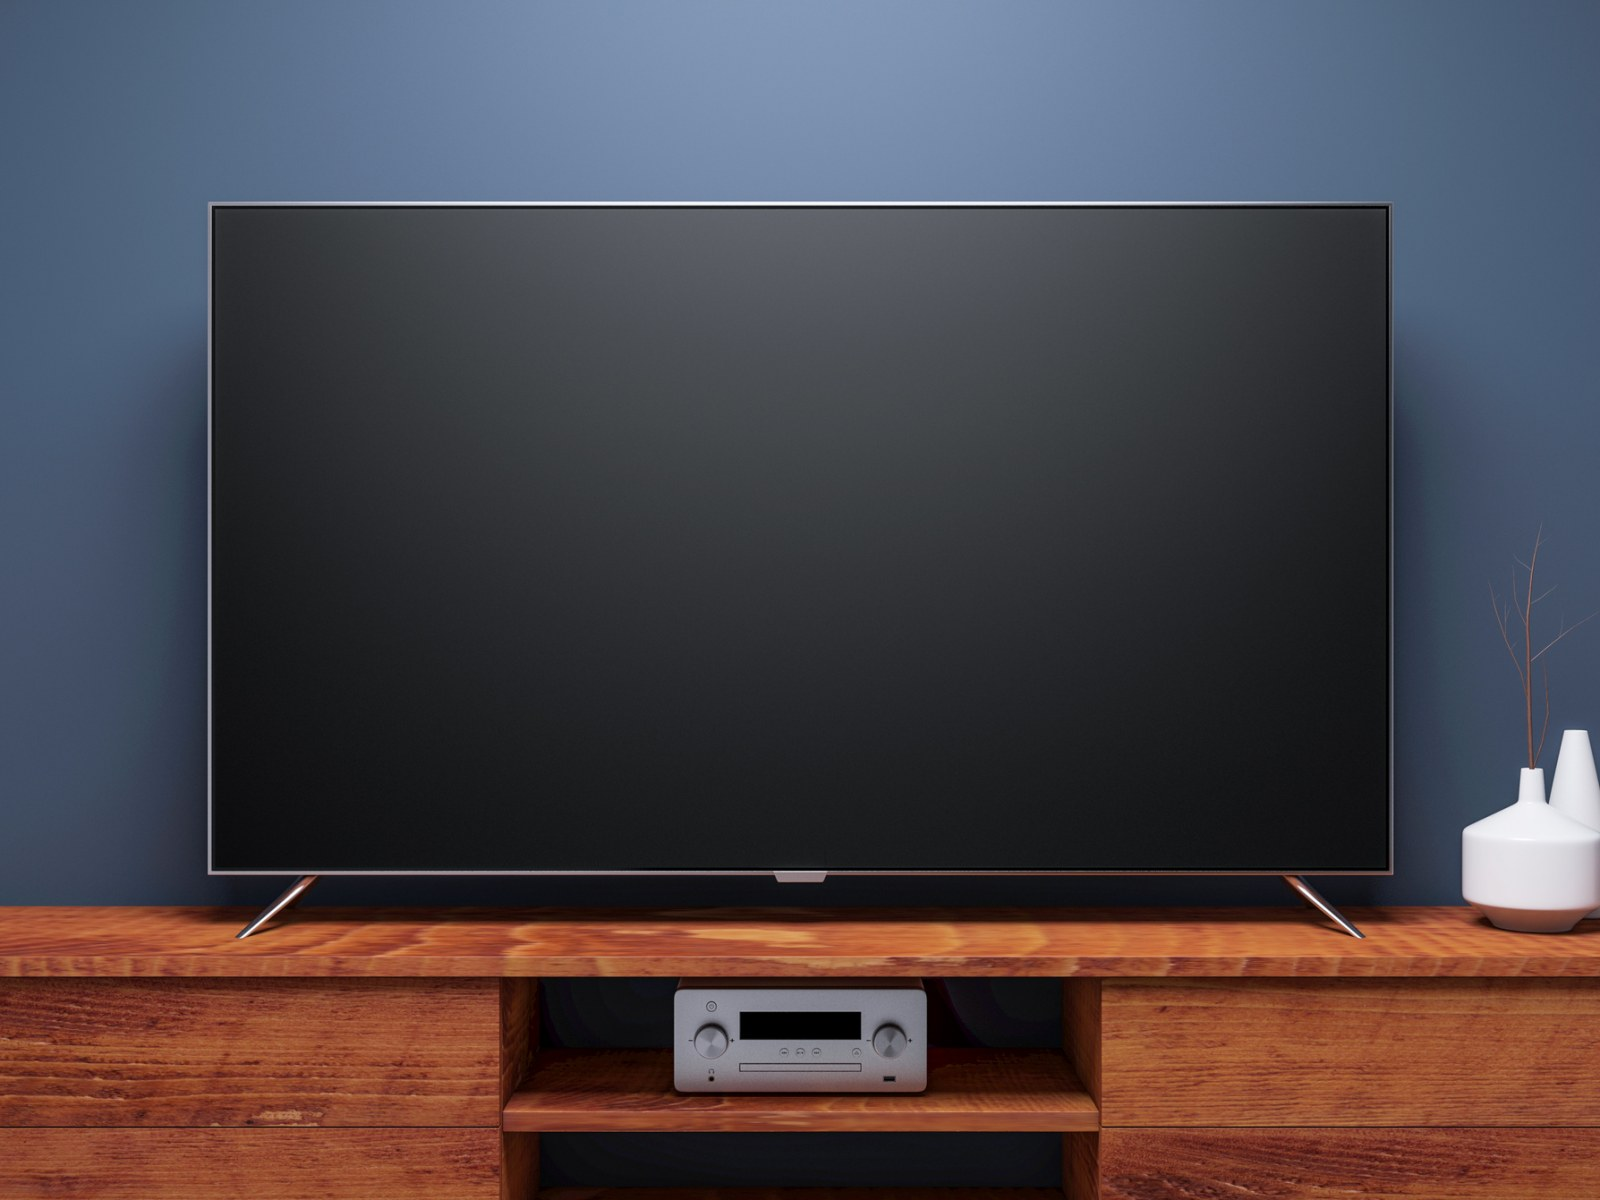 Black Friday 2019 Tv Deals From Walmart Best Buy And Target On Samsung Lg Roku Phillips And More